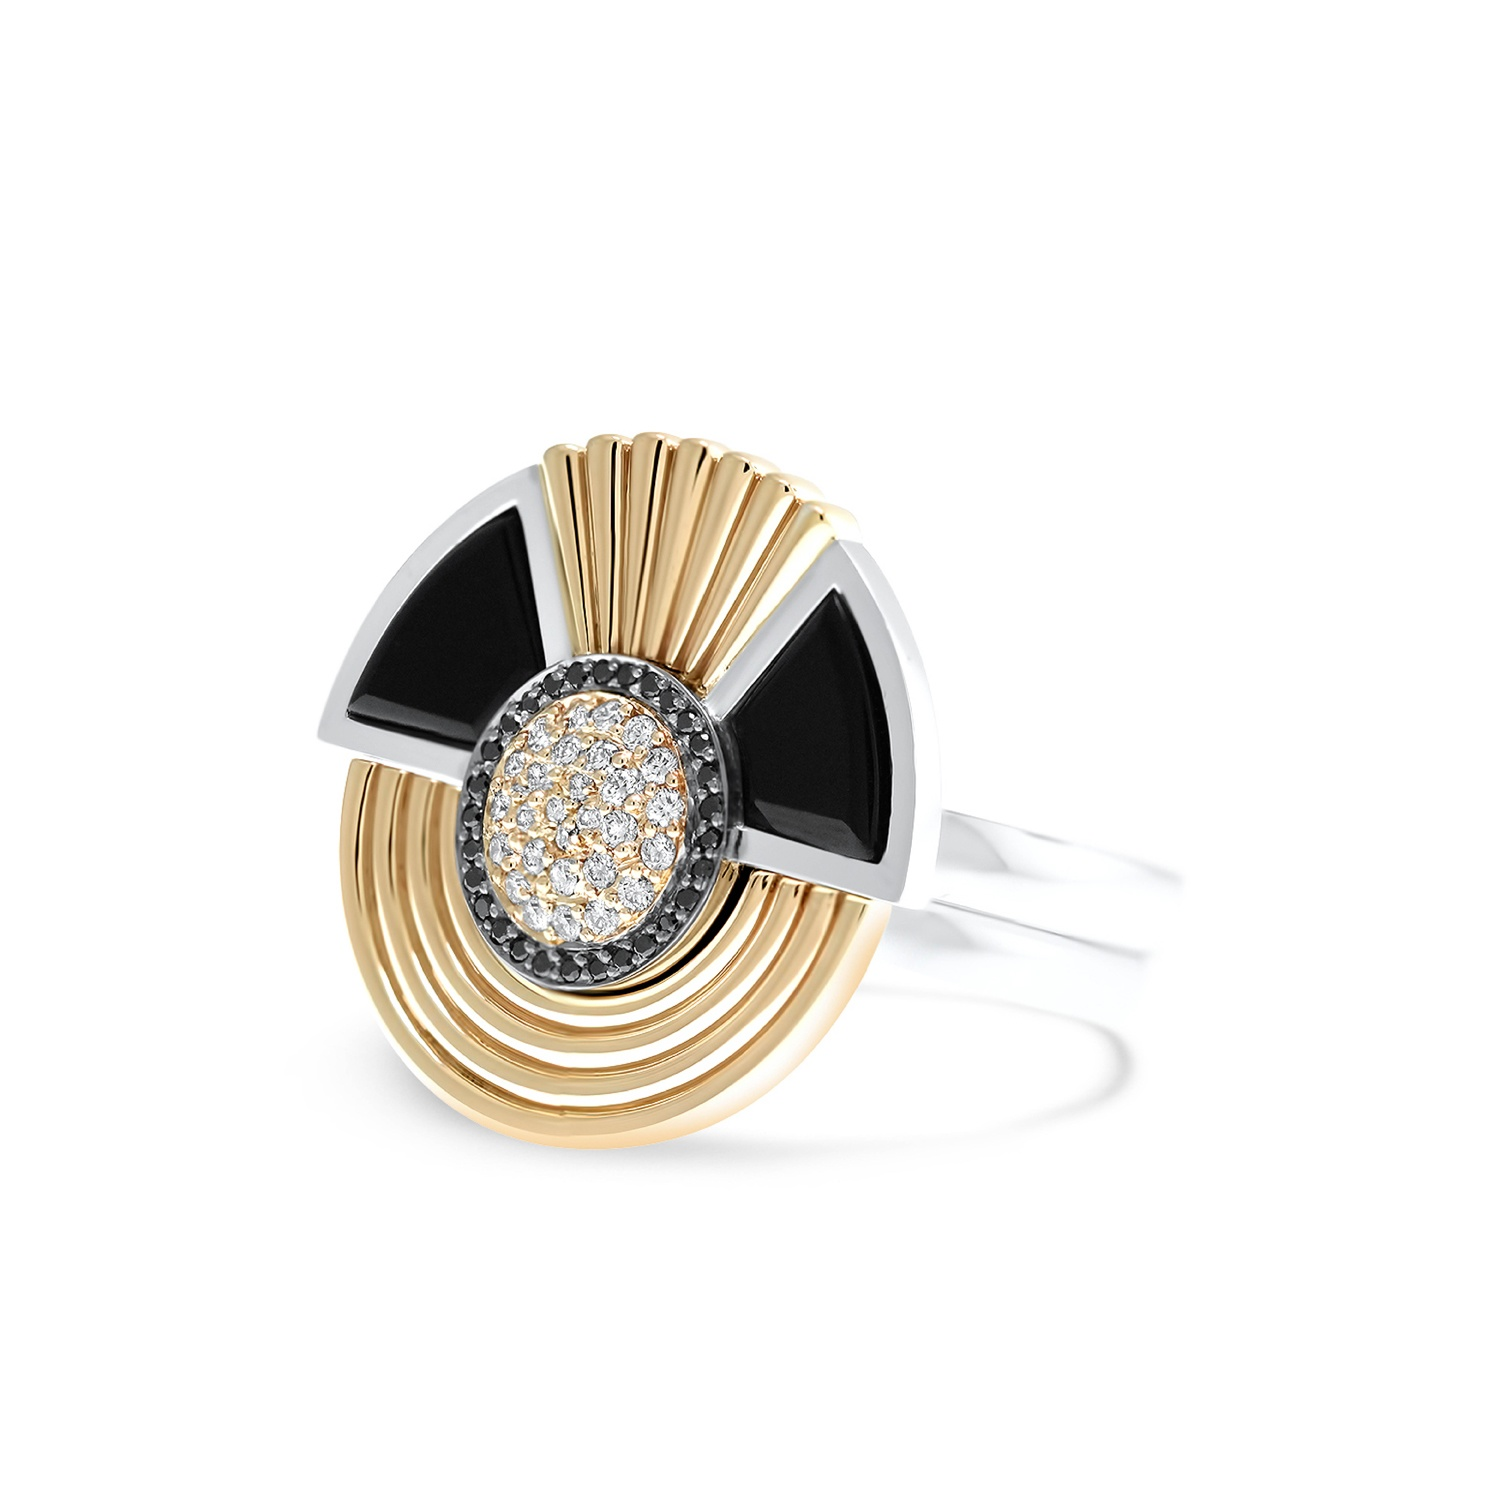 art deco style cleopatra ring in 18k white and rose gold. Black Bedroom Furniture Sets. Home Design Ideas